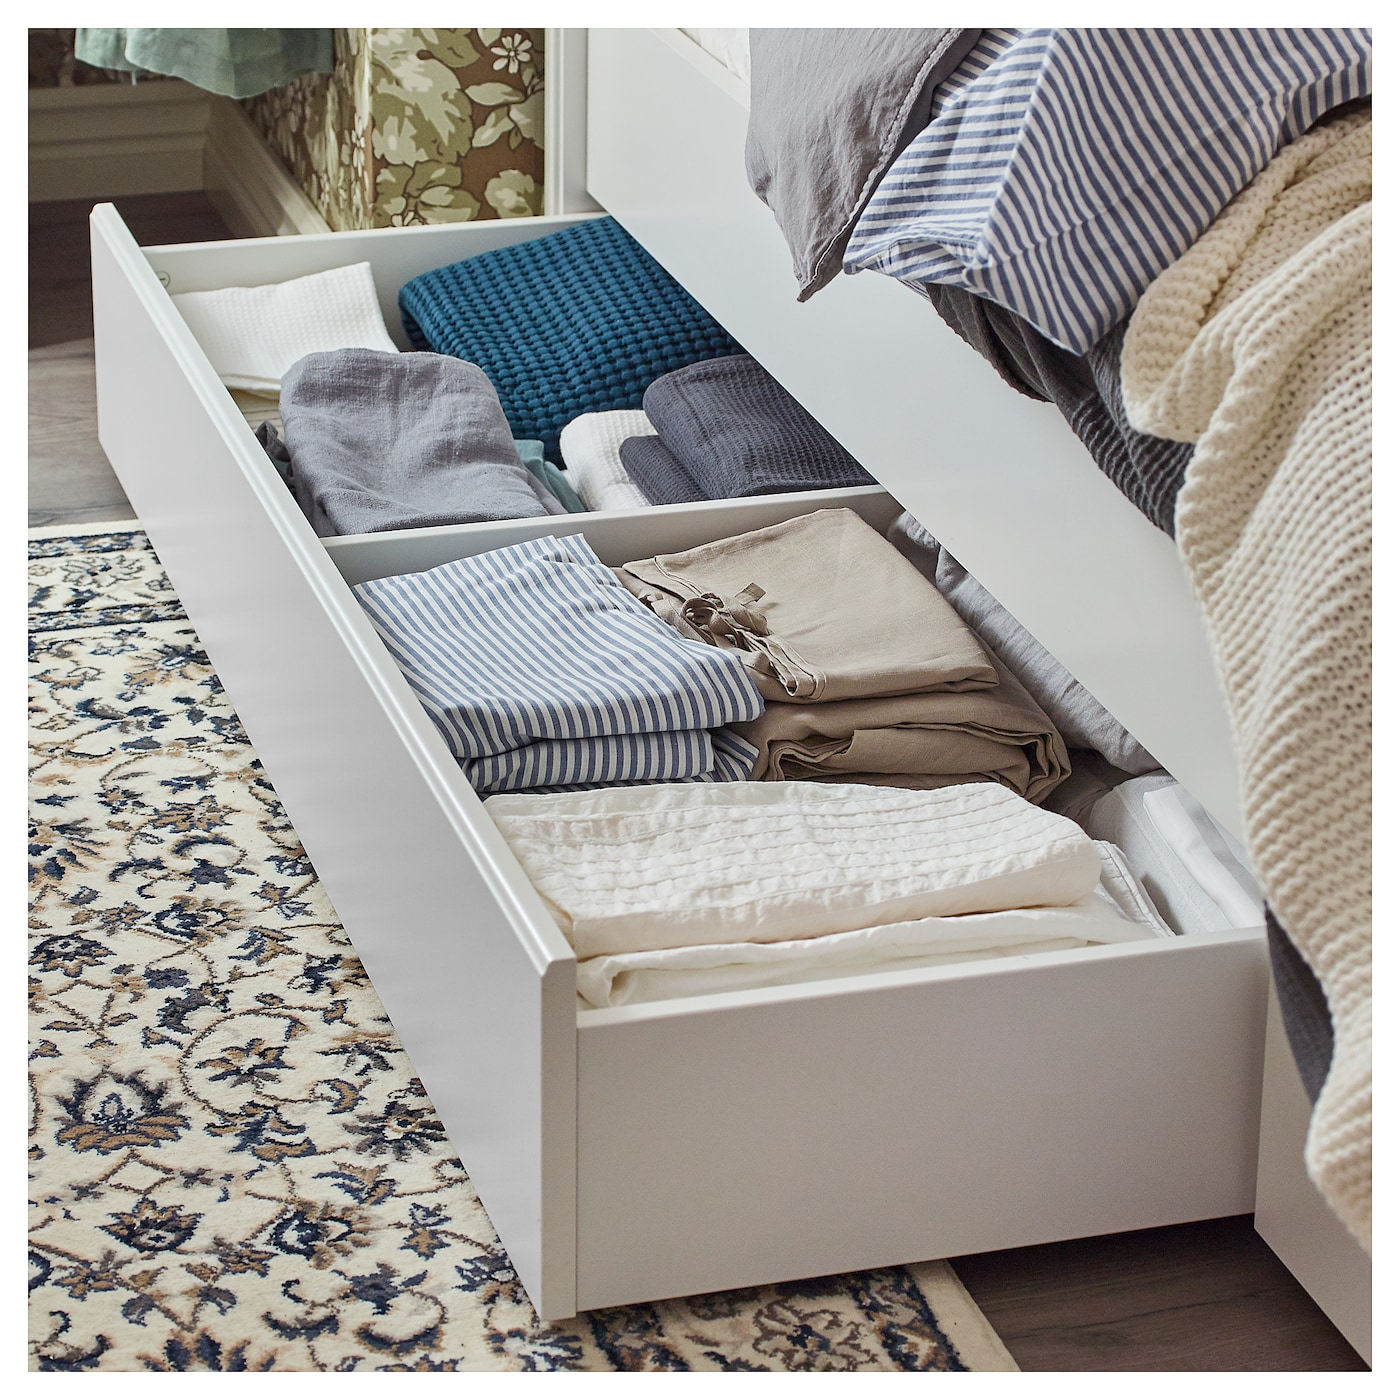 SONGESAND Bed frame with 4 storage boxes White luröy Standard Double